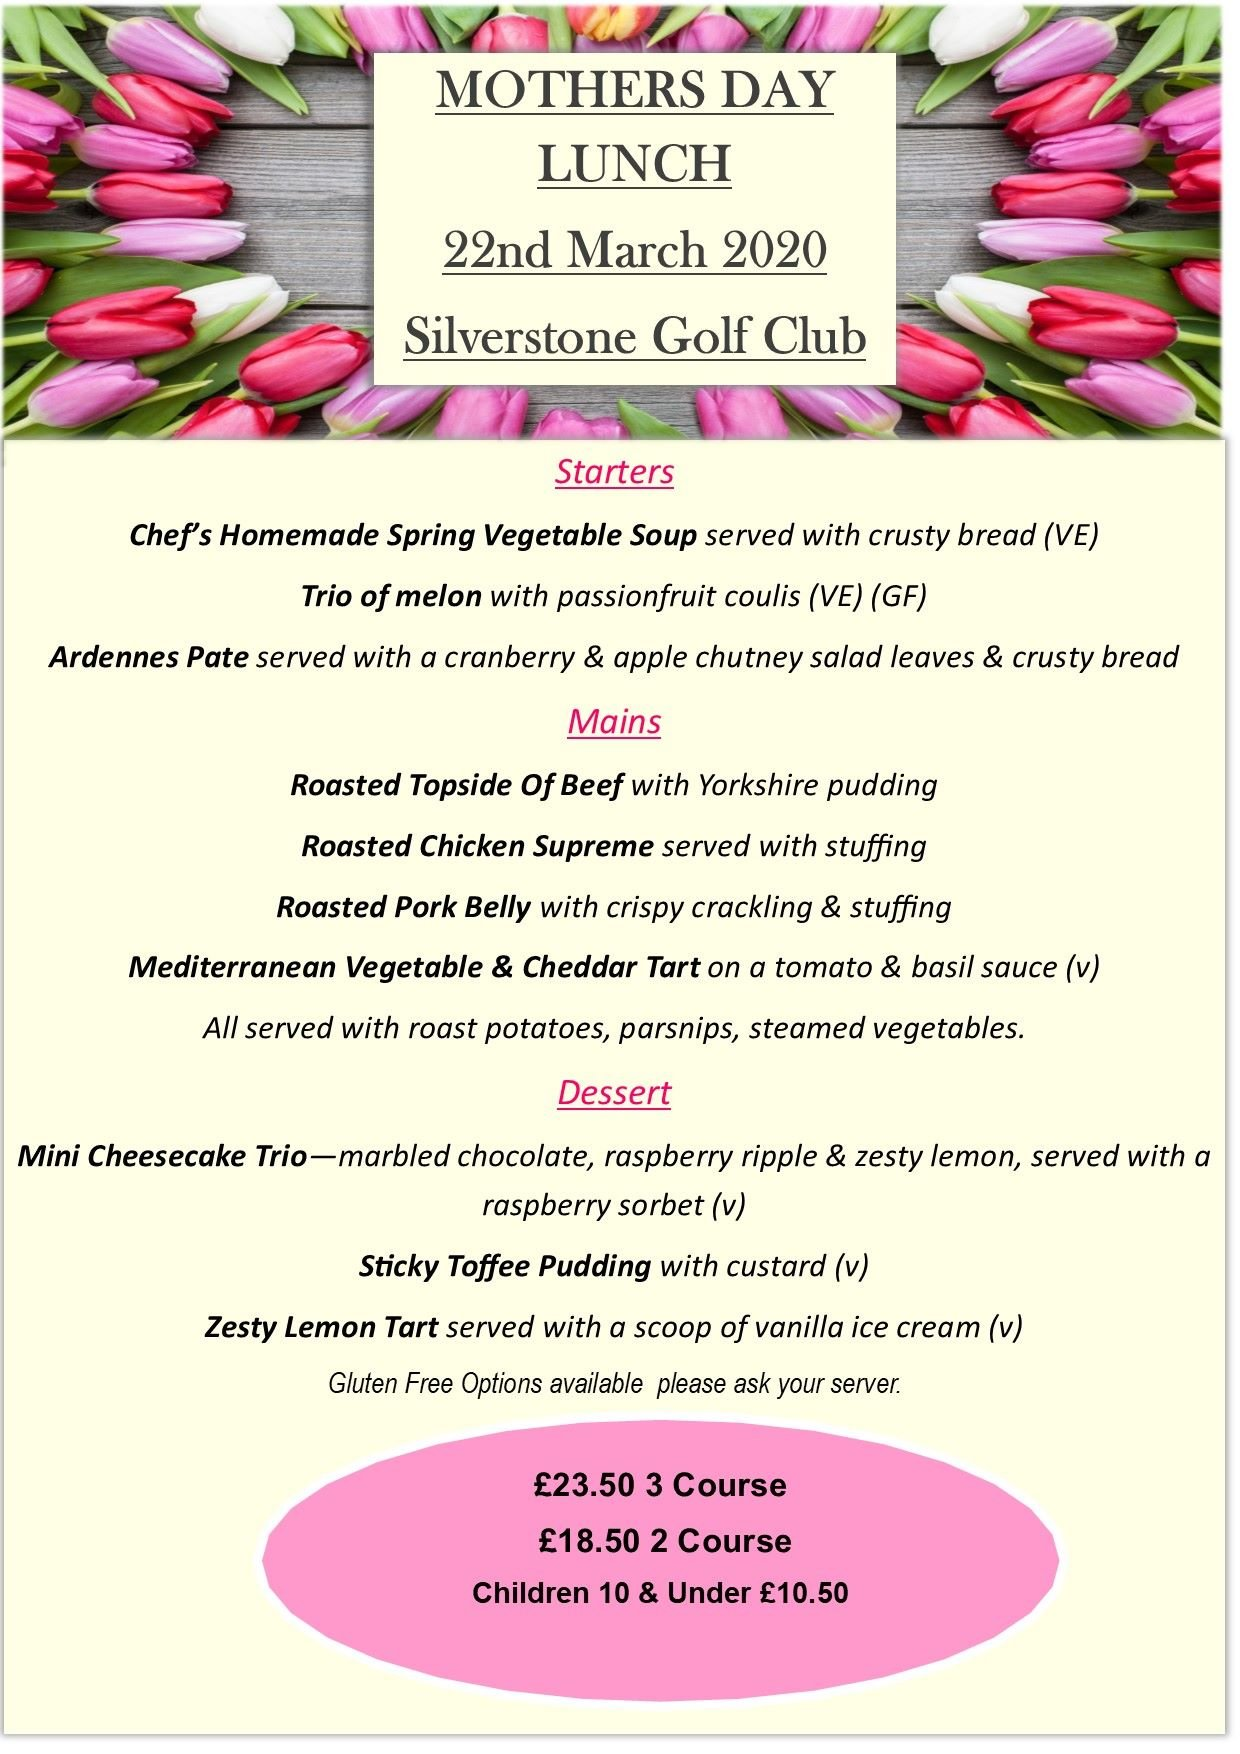 Mothers Day Silverstone Golf Club 2020 Mail Chimp With Menu